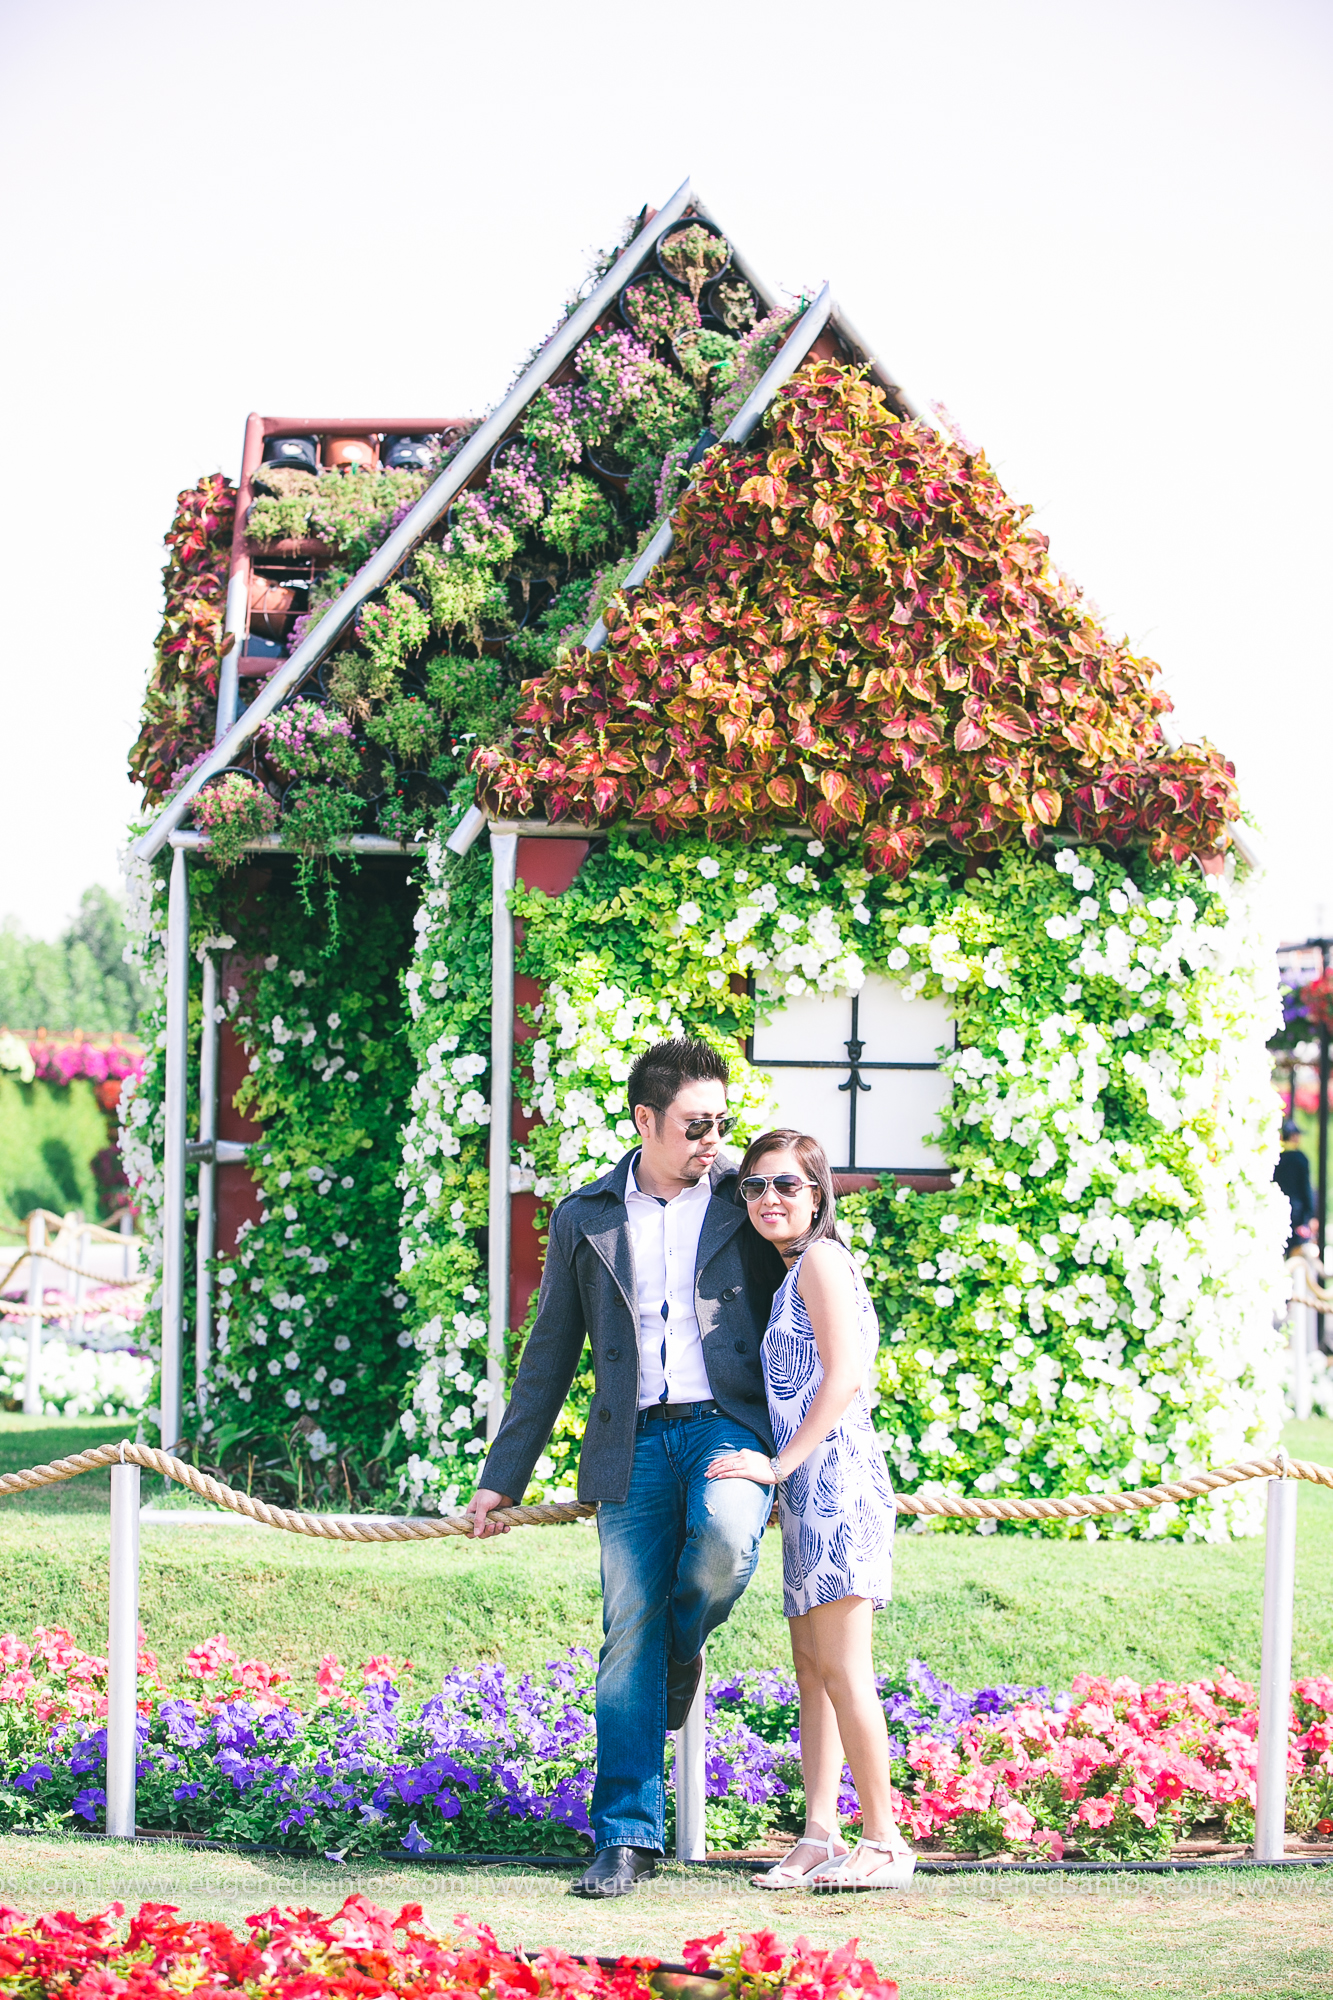 ES - Dubai Wedding Photography DR-23.jpg